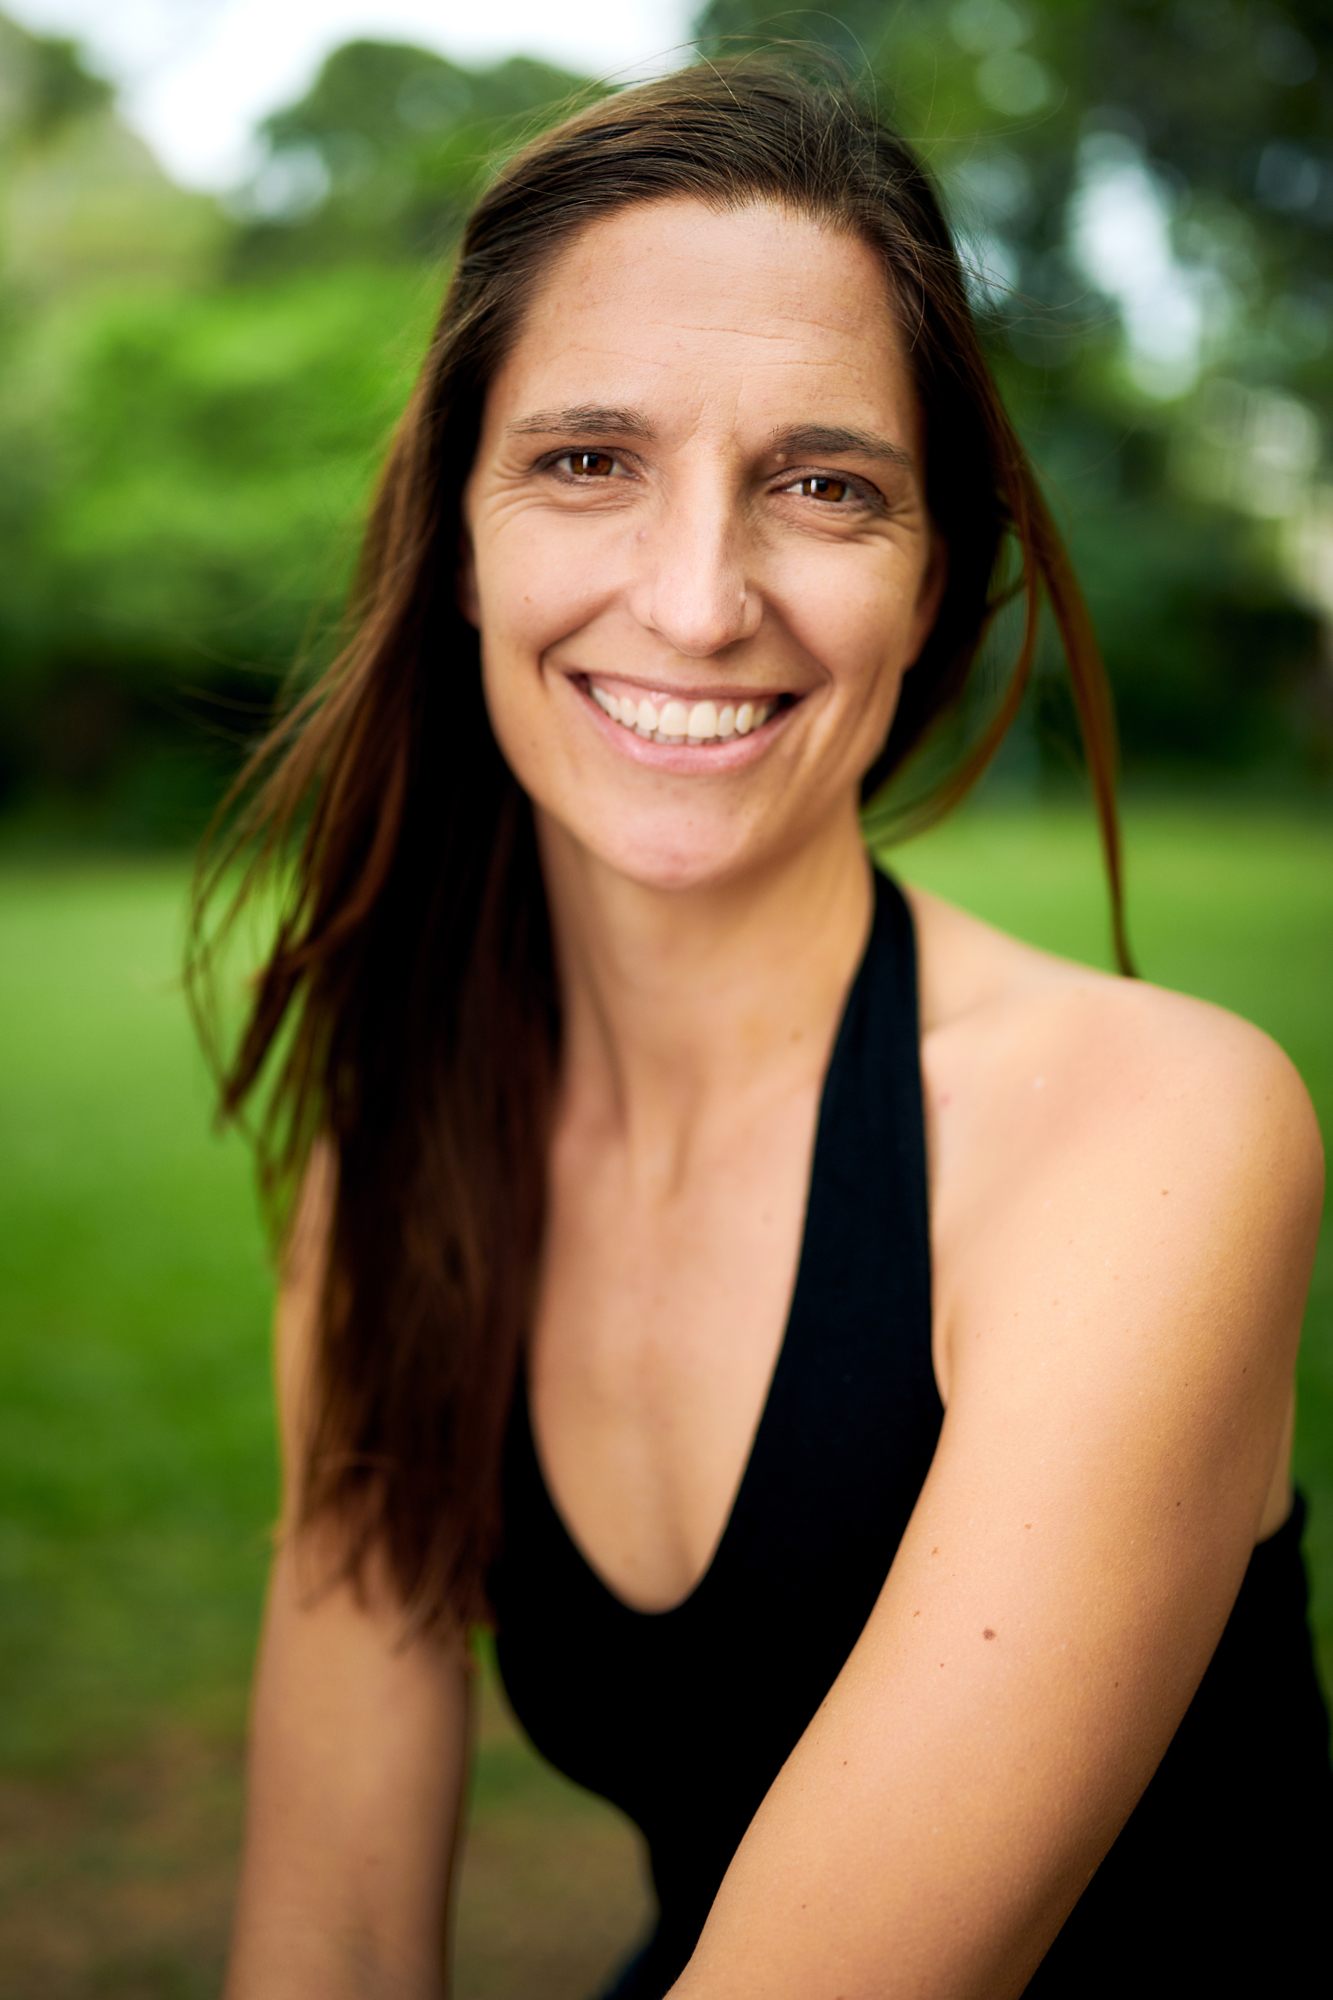 Sarah McTee - Sarah began practicing yoga in 2003. She left Hawaii for 11 years and during that time became a dedicated student of the Jivamukti style. Sarah's gratitude for all of the teachings she received inspired her to participate in the Jivamukti teacher training in New York. Studying with the founders, David Life and Sharon Gannon, and under the rigorous and inspiring mentorship of Andrea Boyd, Sarah received her Jivamukti certification in 2011 and began teaching in San Francisco shortly thereafter. Sarah augments her yoga practice and teachings with the study of Sanskrit, and has a level 1 Reiki certification with Eric Rueben. Sarah often offers kirtan and plays the harmonium in her classes. You can practice with her at Open Space Yoga. You can also find her co-hosting Yoga Unplugged events on Oahu.